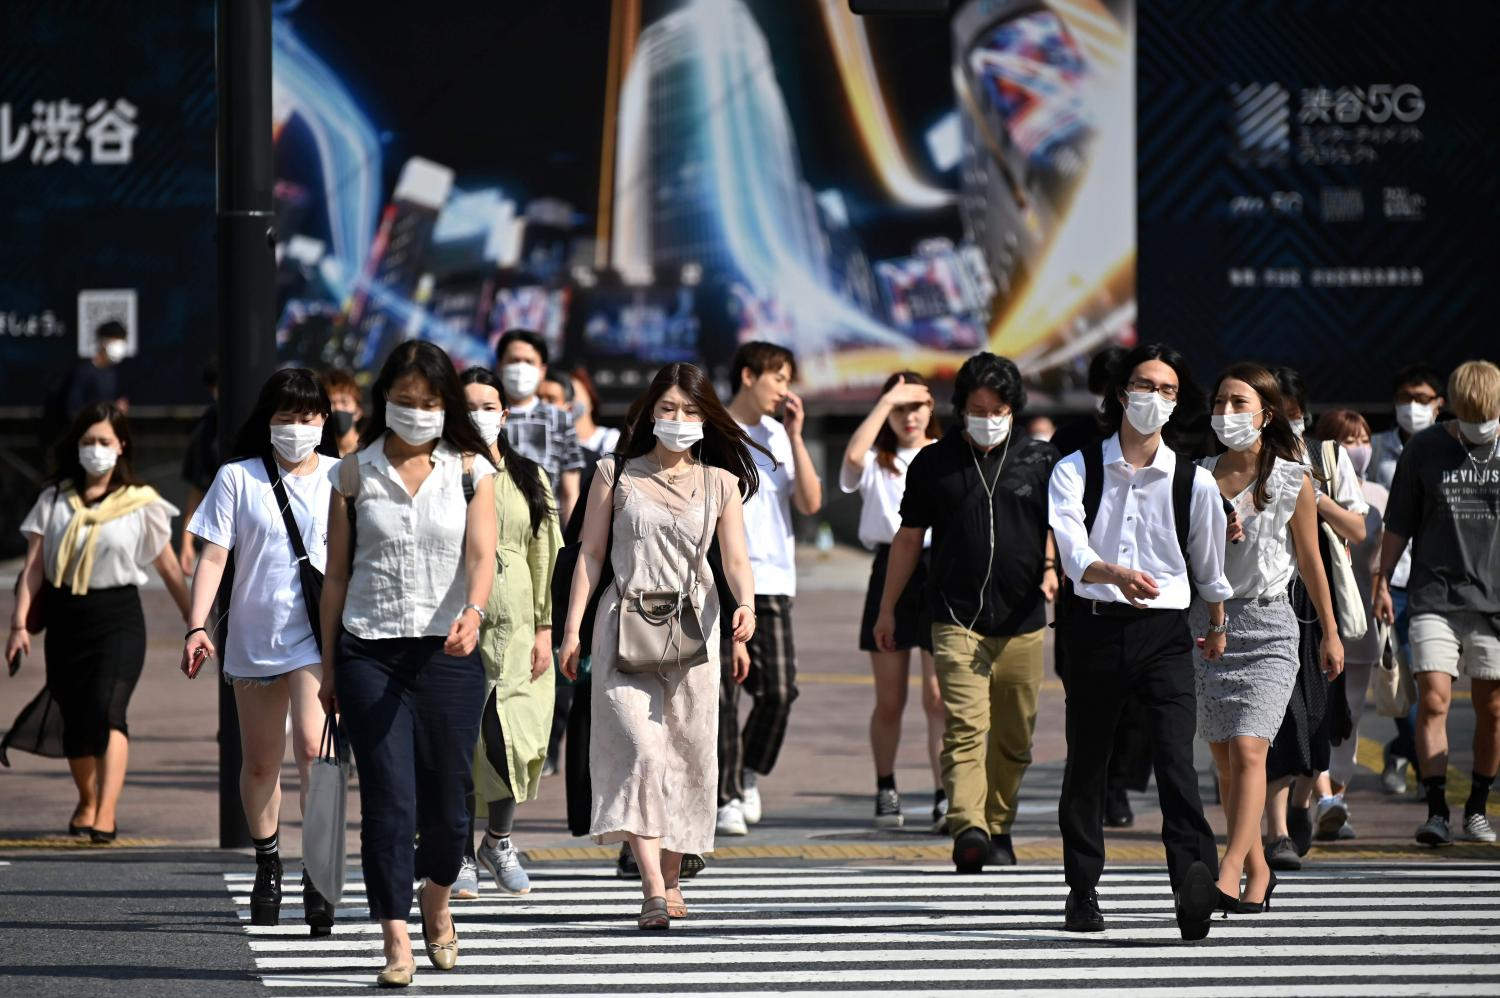 People tread Shibuya crossing in Tokyo on Monday. The FTI is forwarding a request for 100 Japanese business travellers per day be allowed in the country. AFP